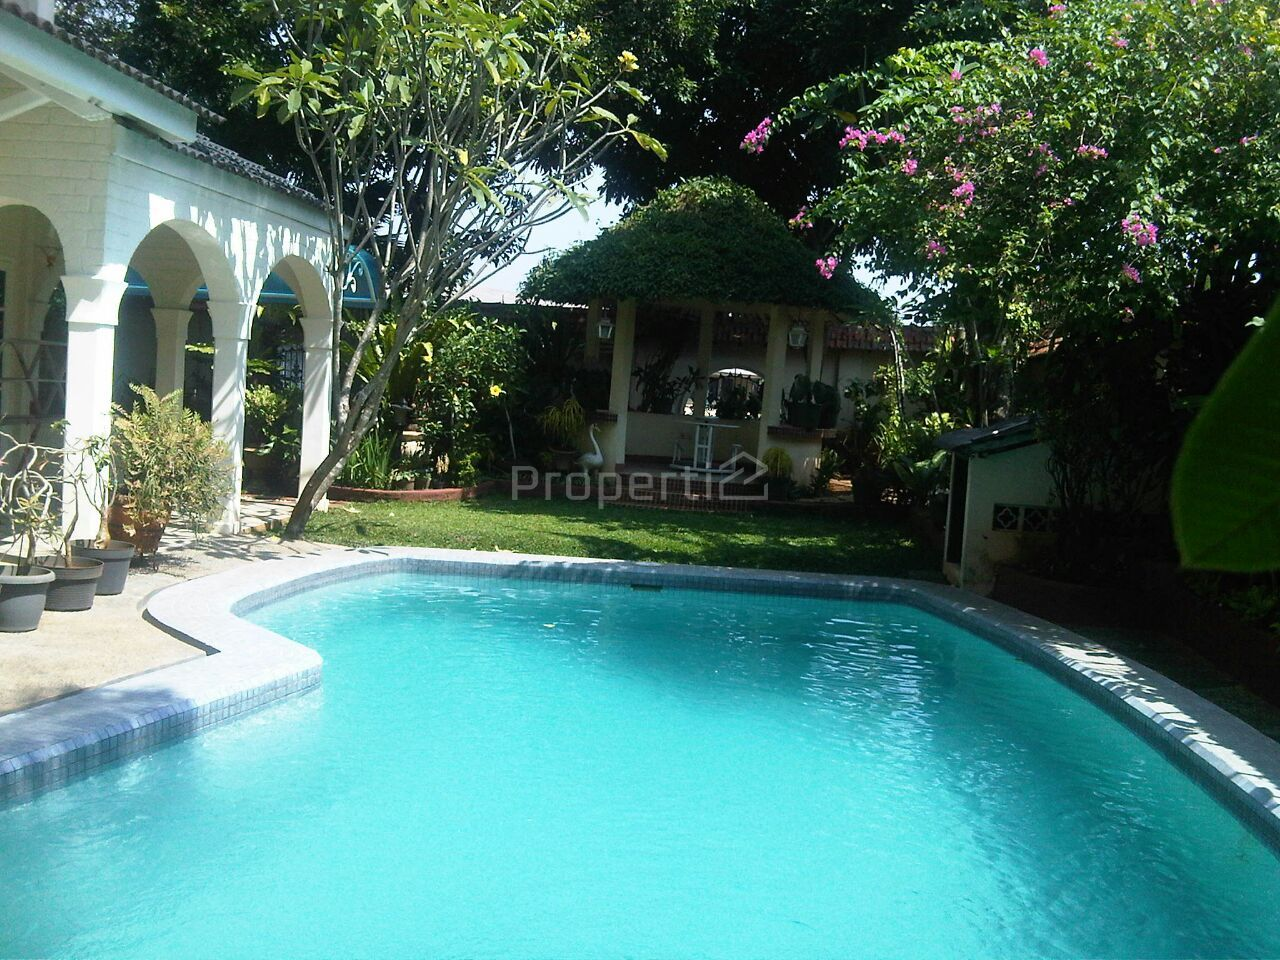 Luxury House with Swimming Pool in Cinere, Jawa Barat